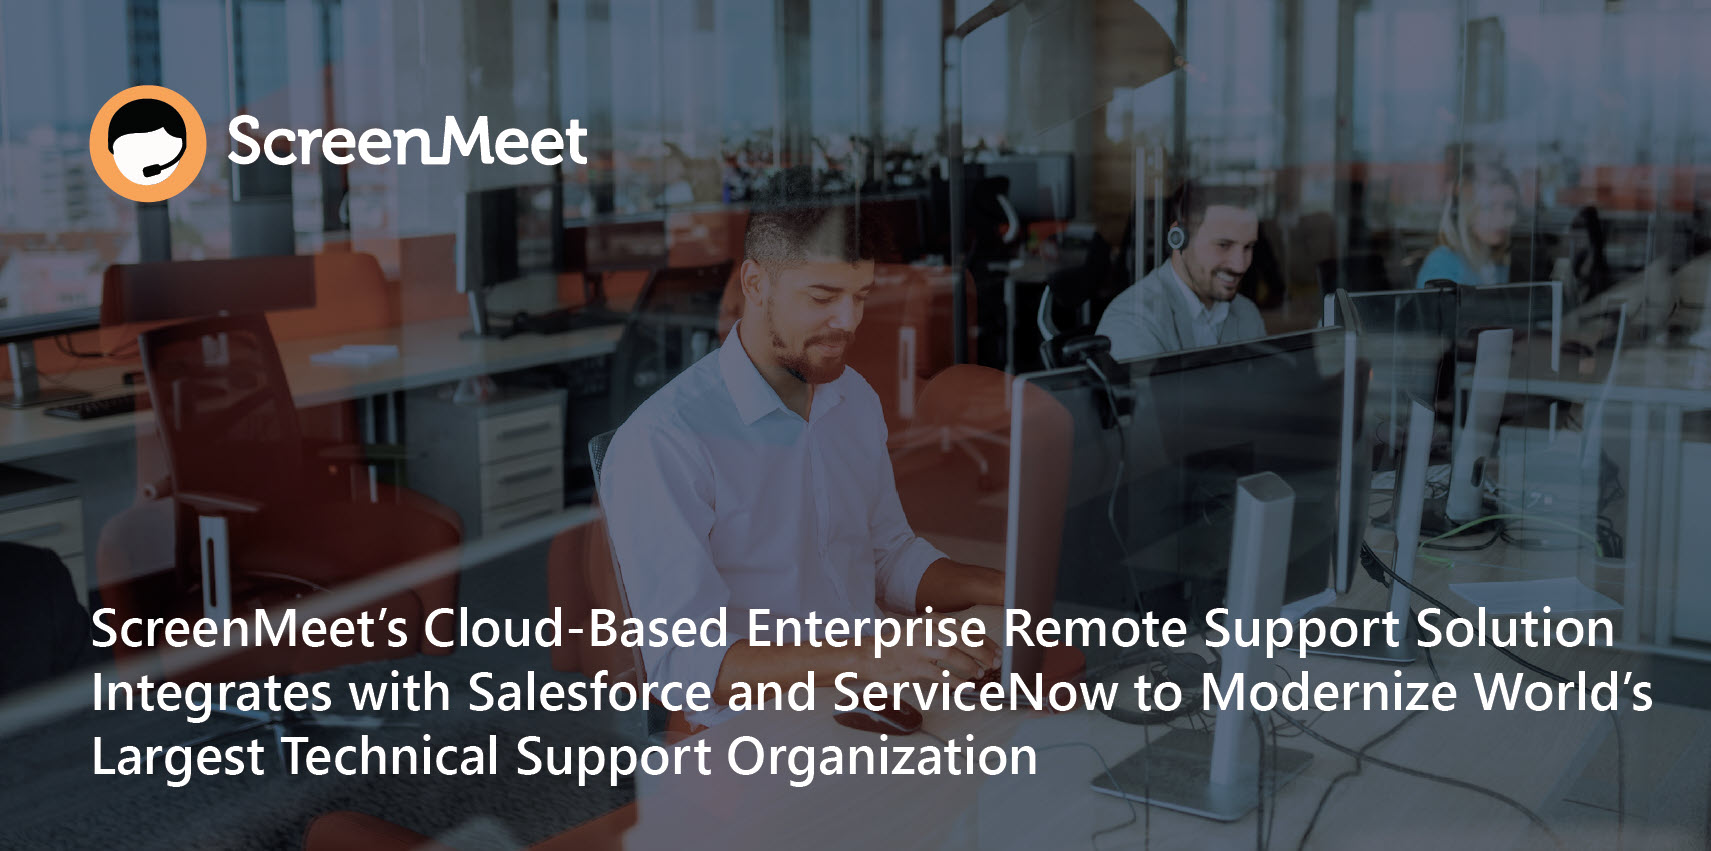 ScreenMeet's Cloud-Based Enterprise Customer Support Solution with Salesforce